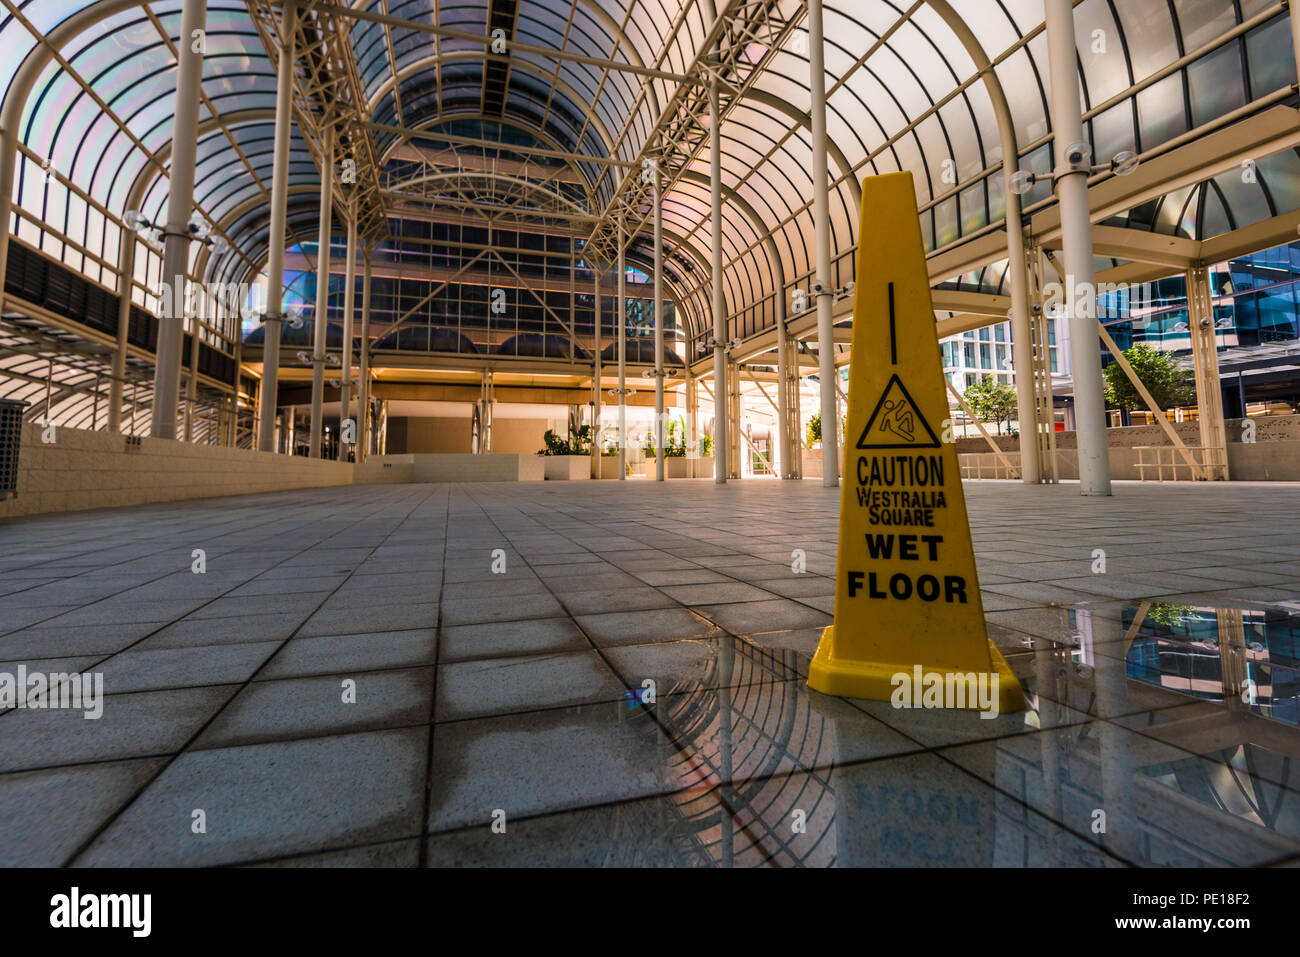 Caution Wet Floor, warning sign in an empty hall - Stock Image